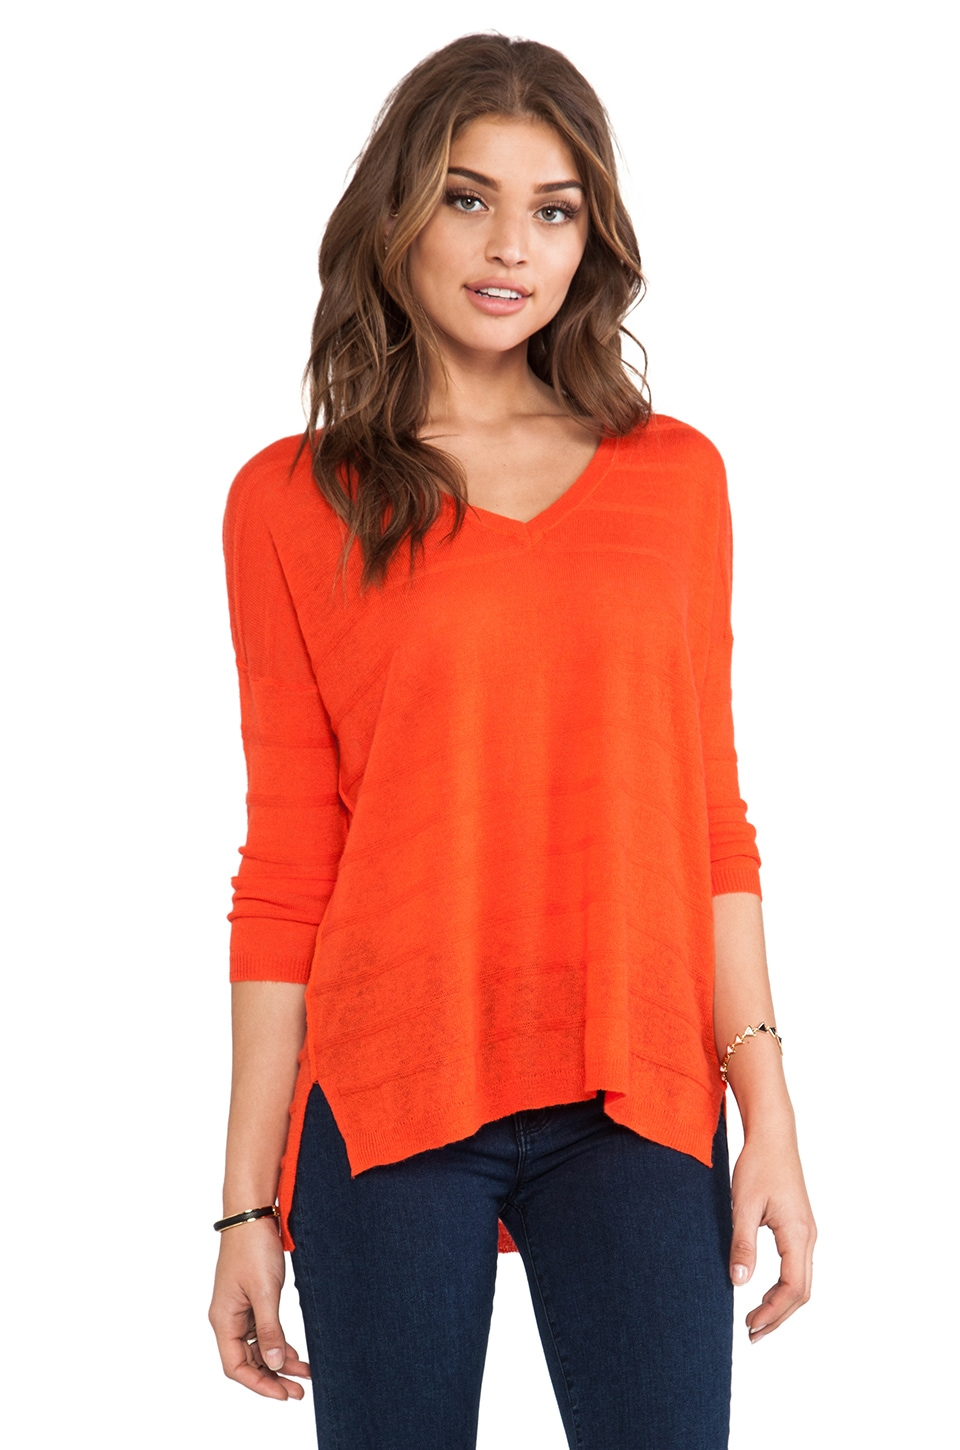 360 Sweater Evie Sweater in Orange Peel